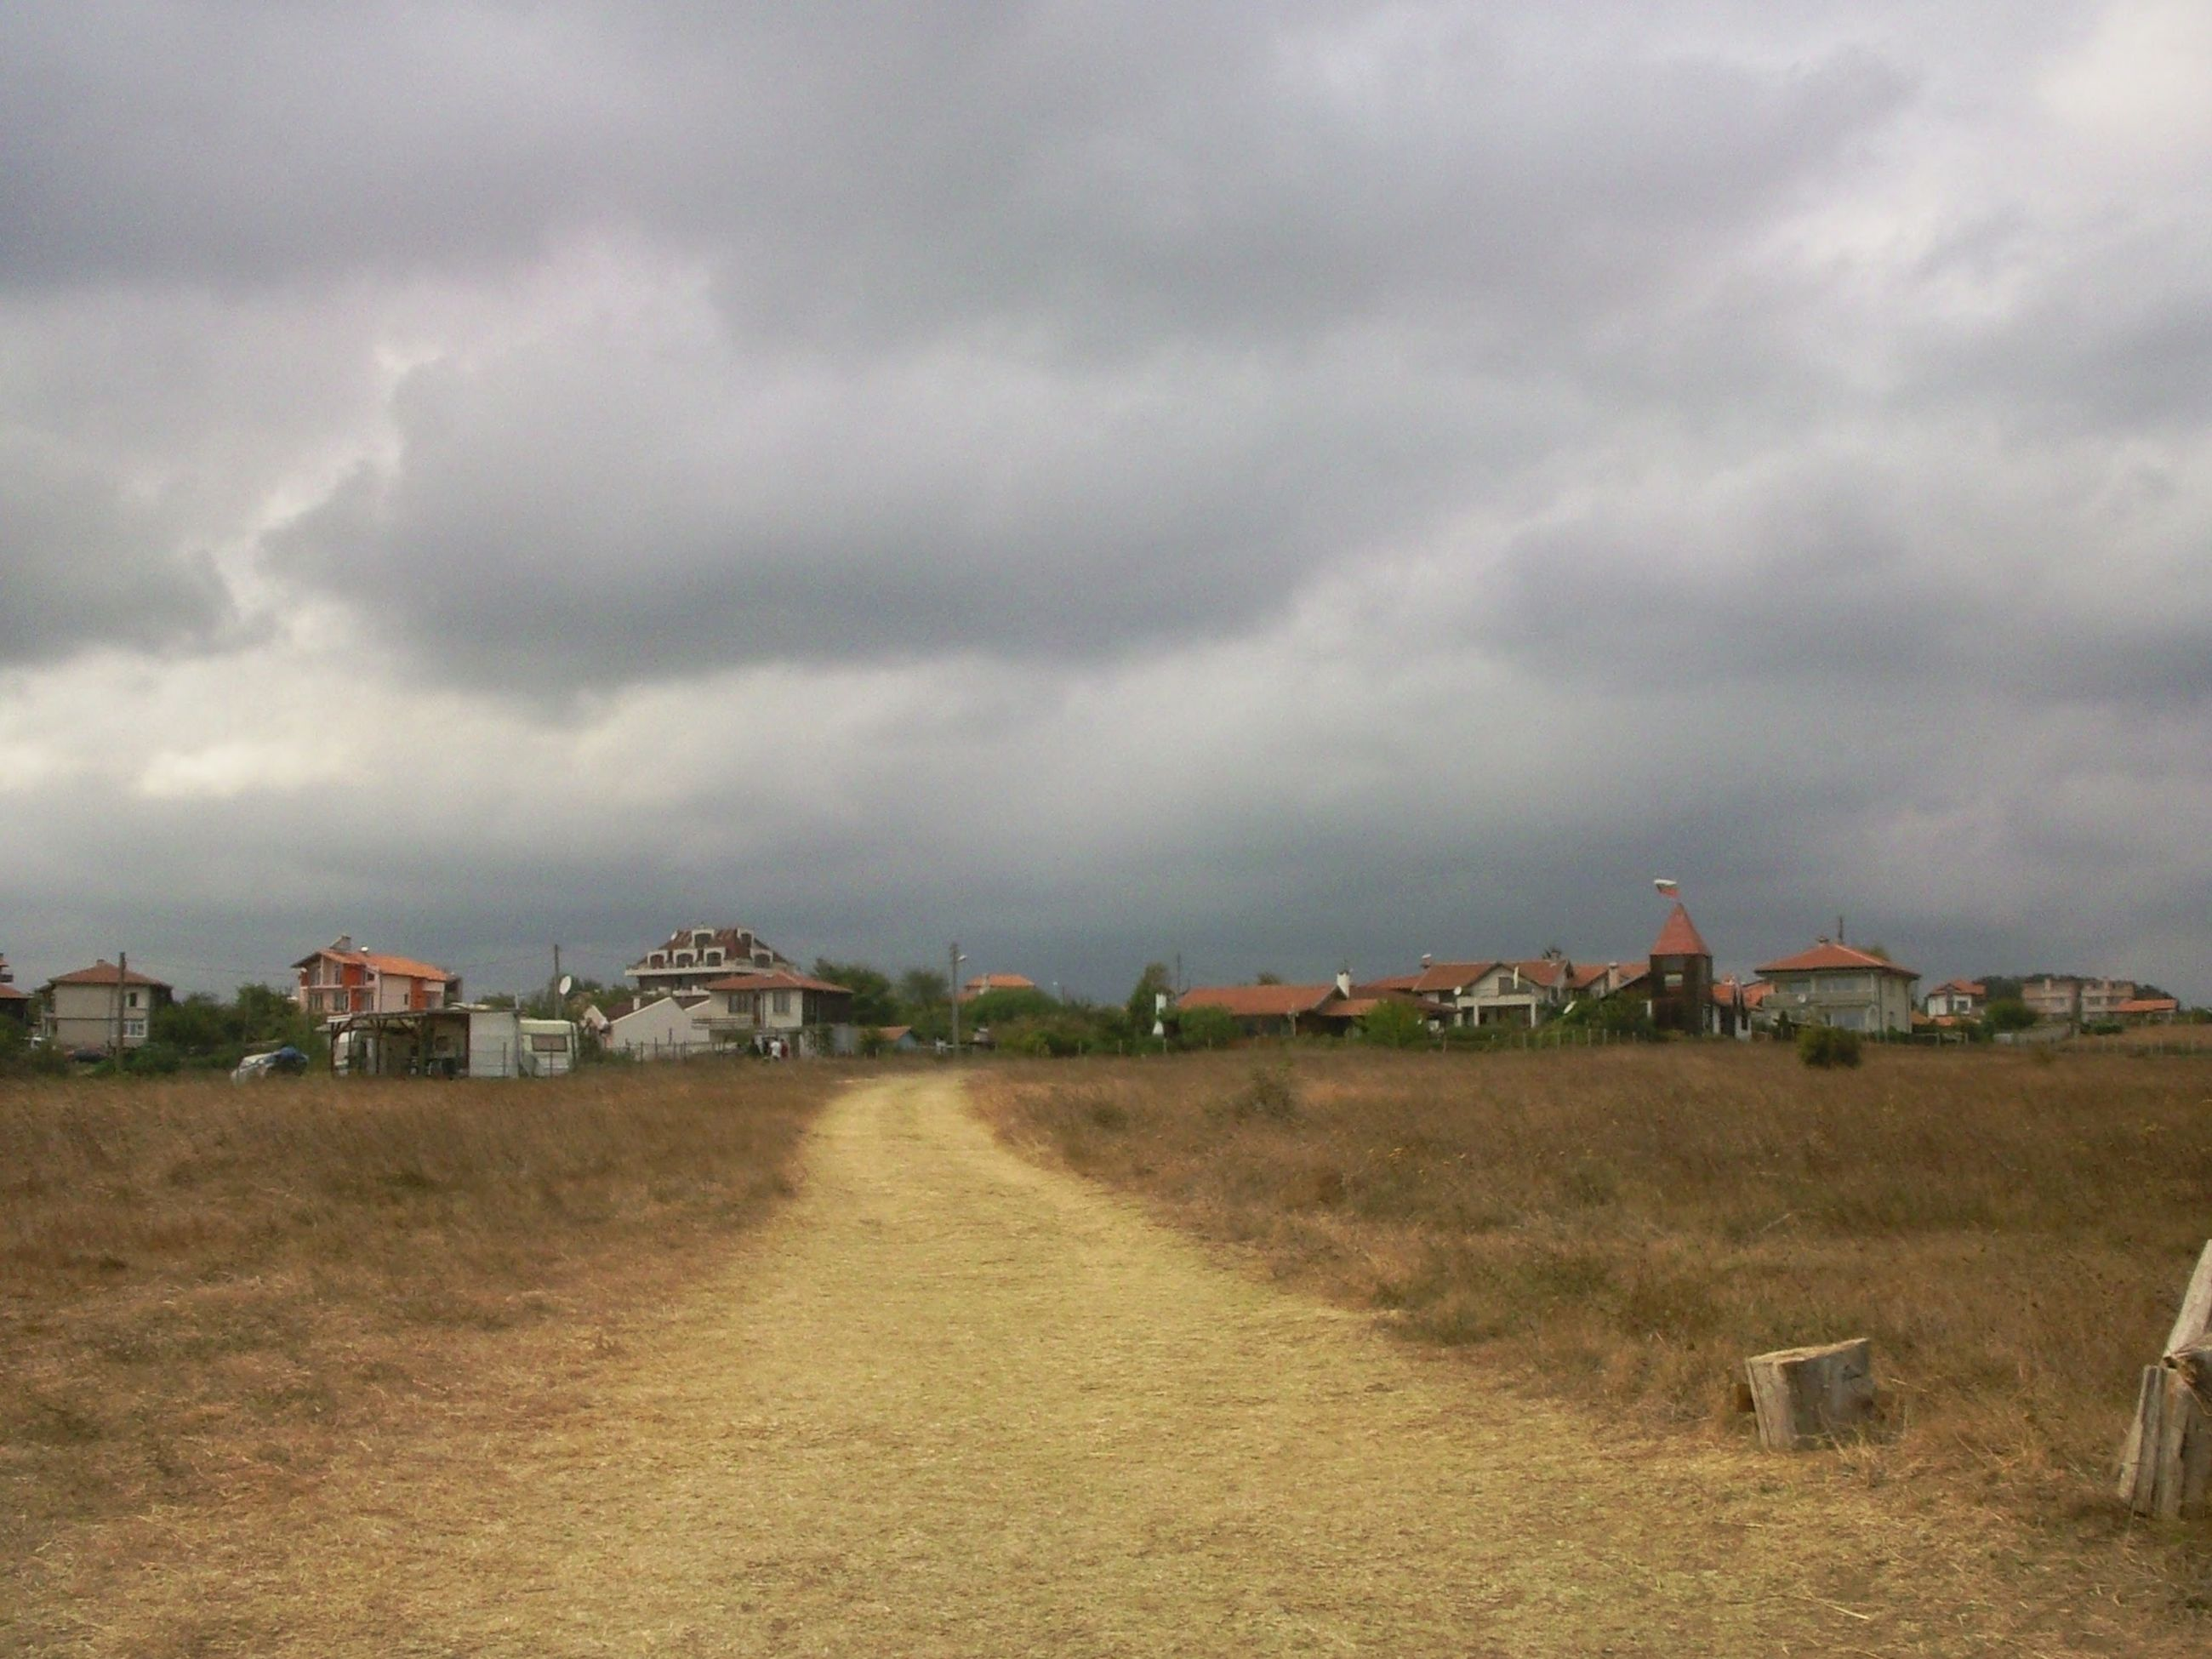 architecture, the way forward, cloudy, built structure, dirt road, cloud - sky, house, tranquility, building exterior, tranquil scene, sky, storm cloud, field, cloud, day, solitude, rural scene, scenics, nature, countryside, outdoors, long, non-urban scene, beauty in nature, no people